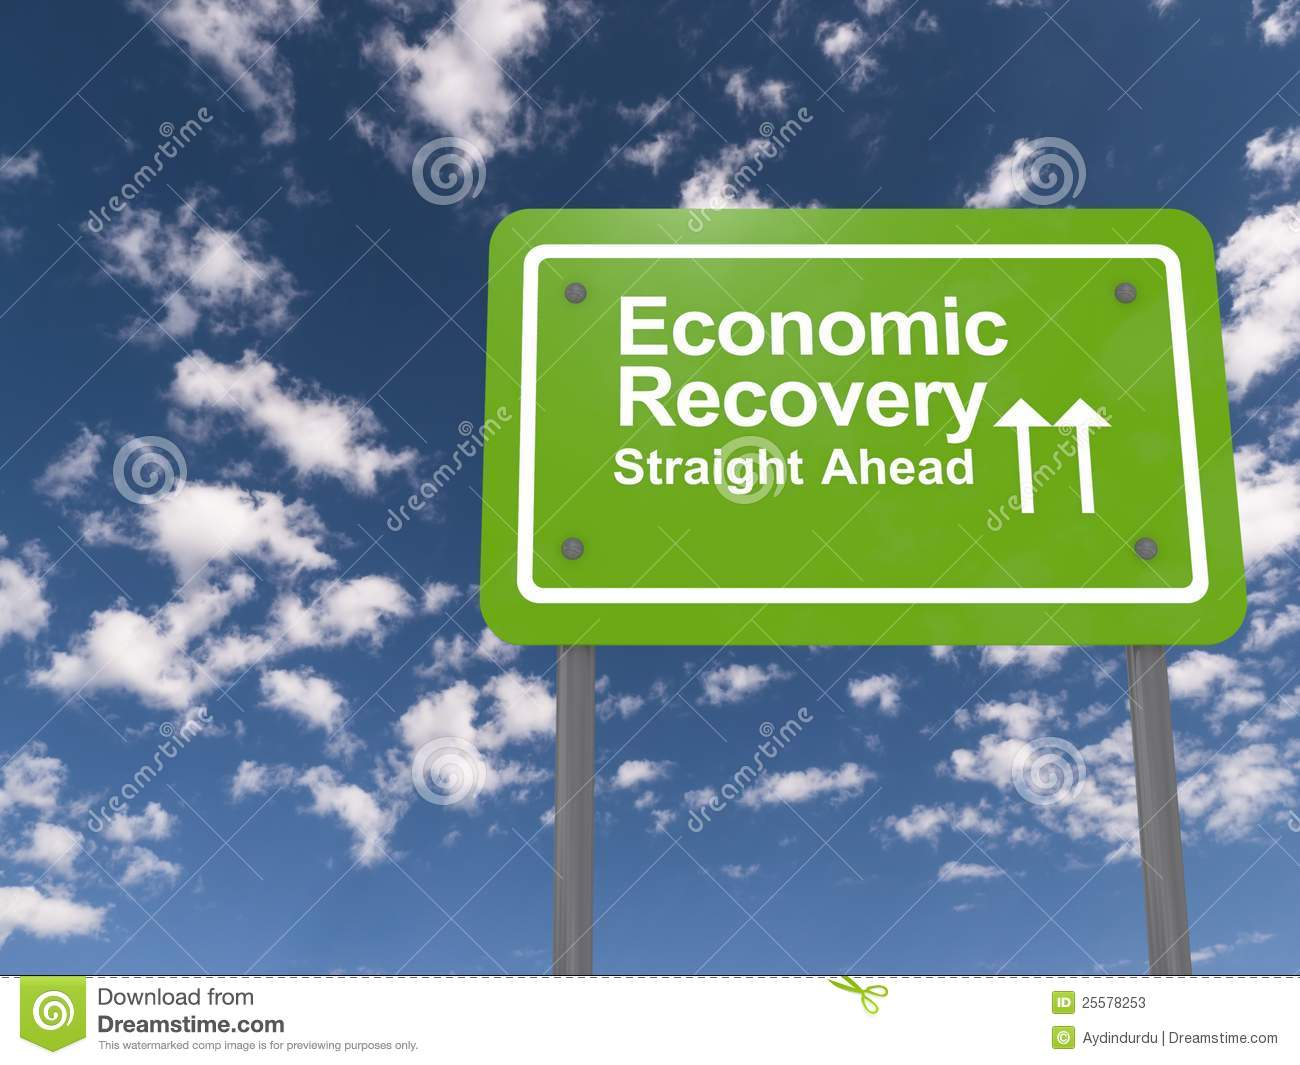 Was the economic recovery of the